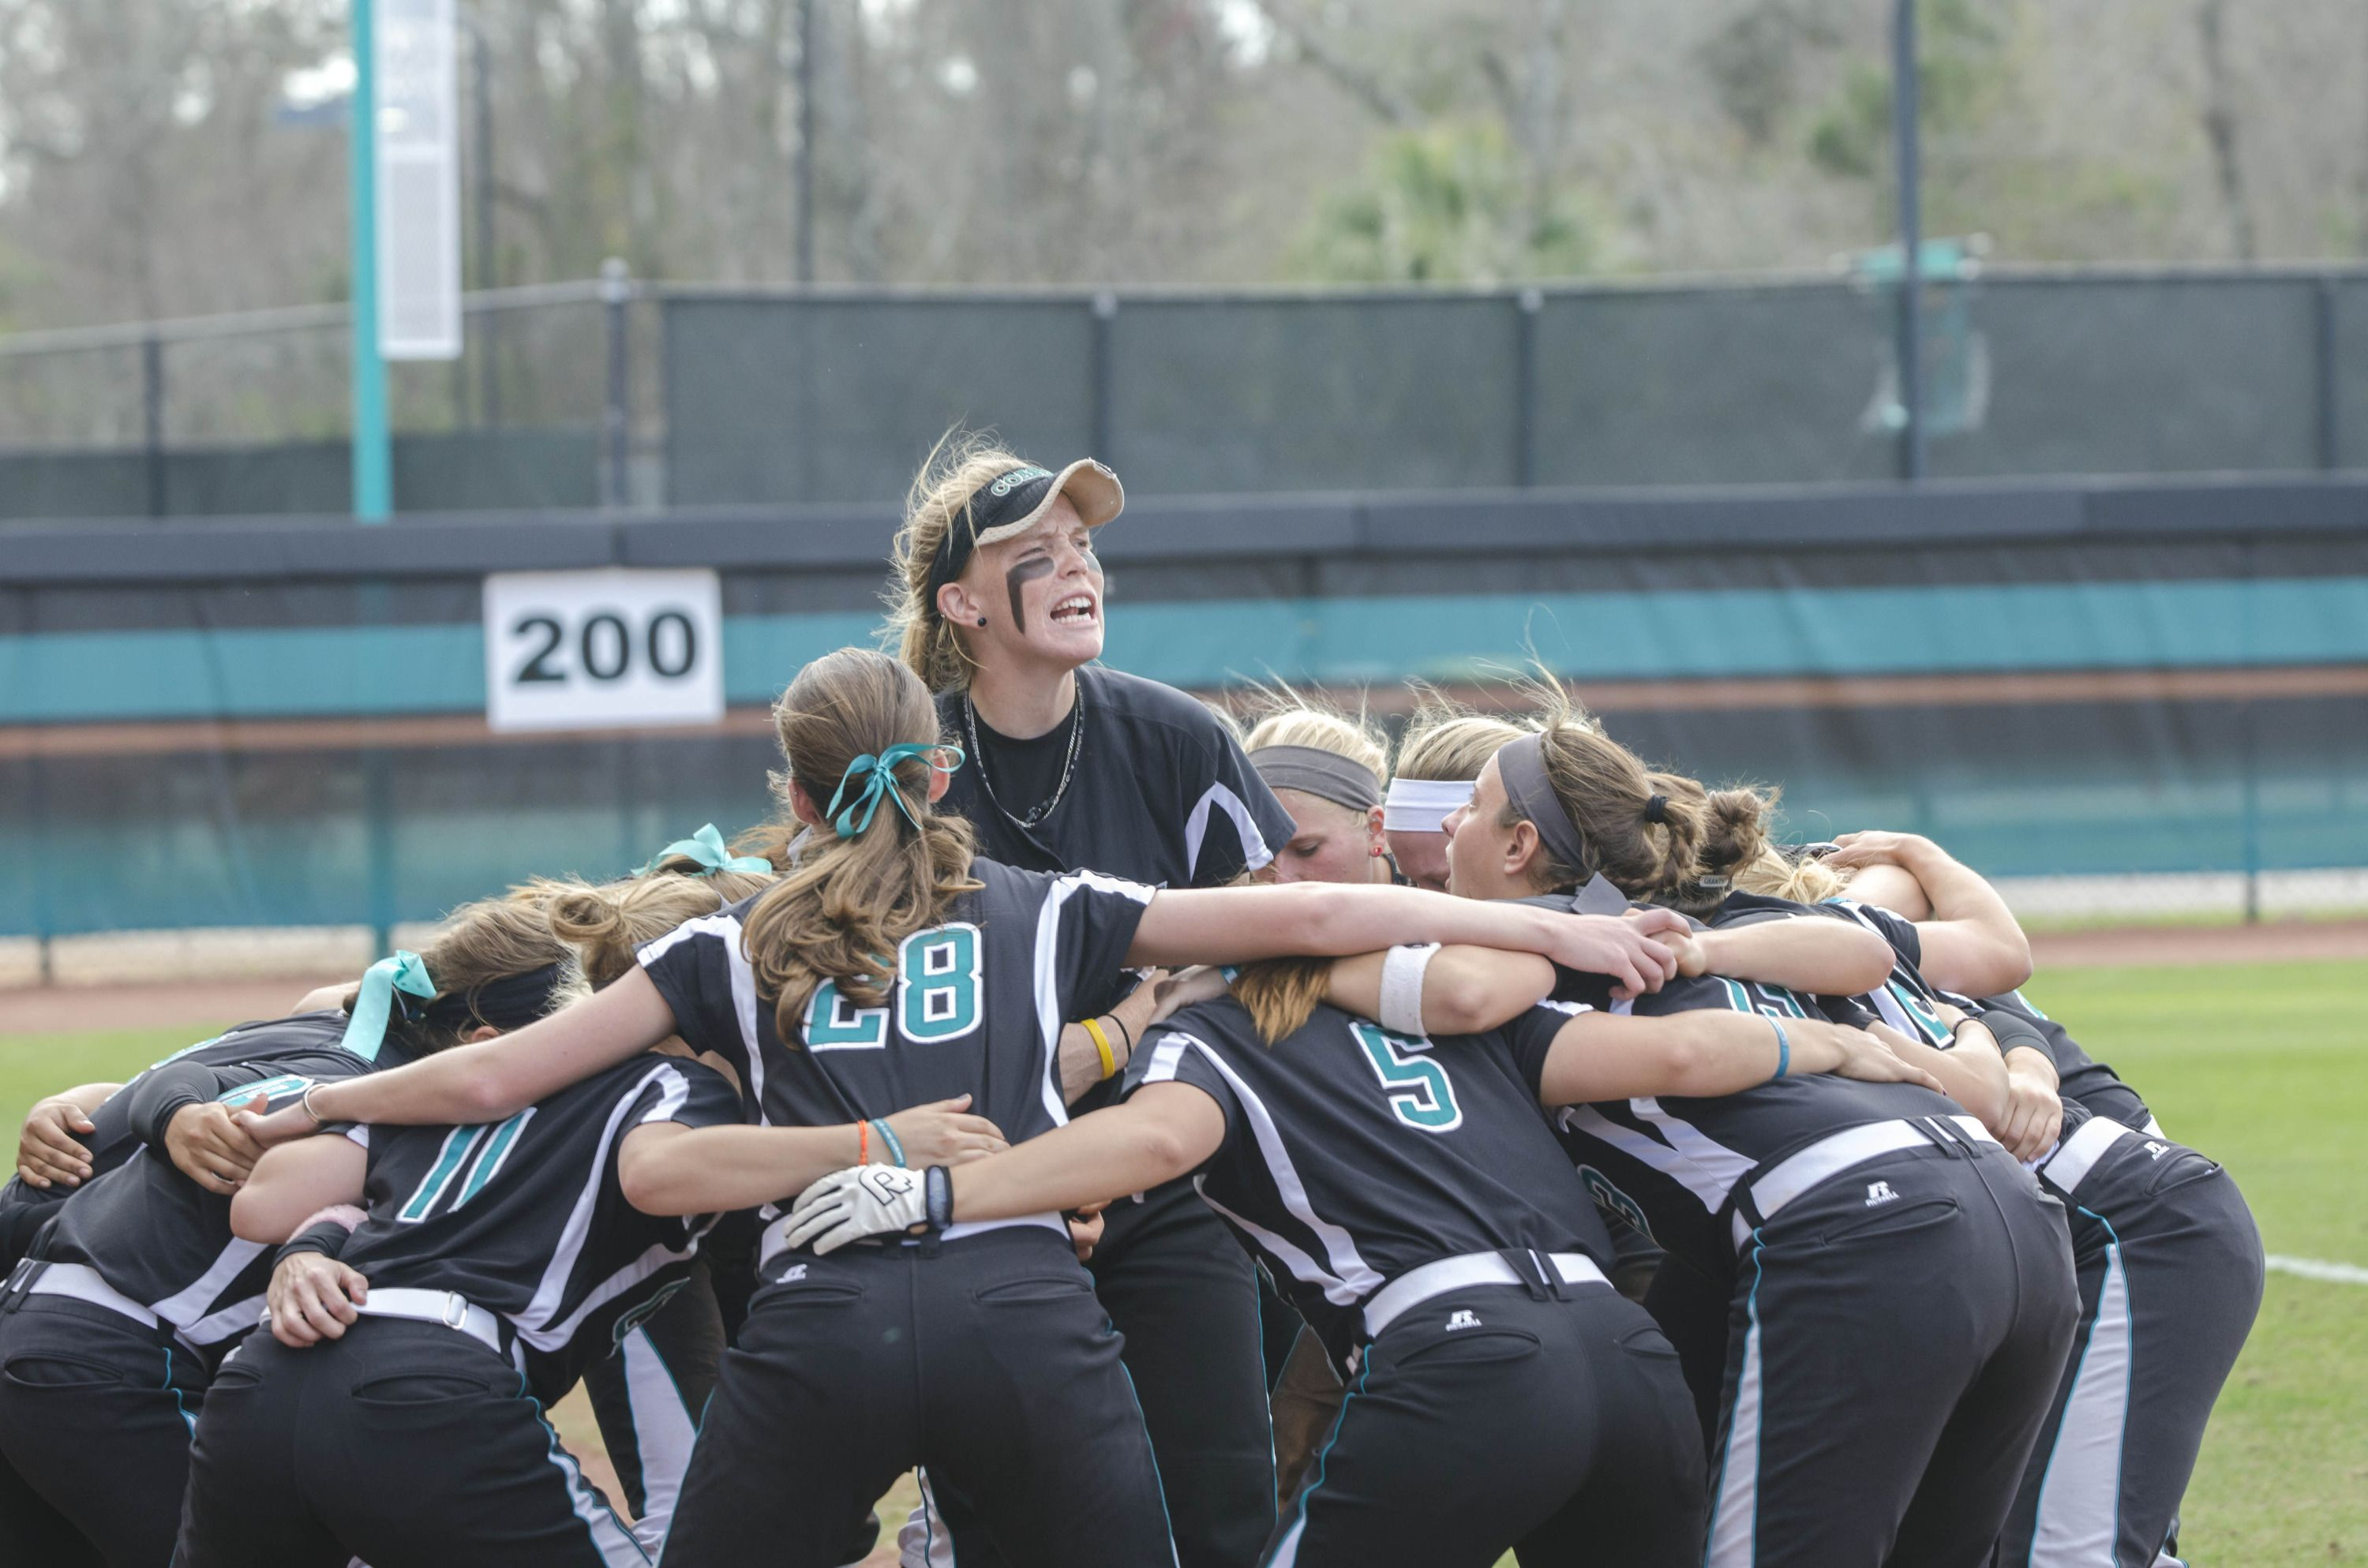 Pin by Coastal Carolina Athletics on Softball Softball